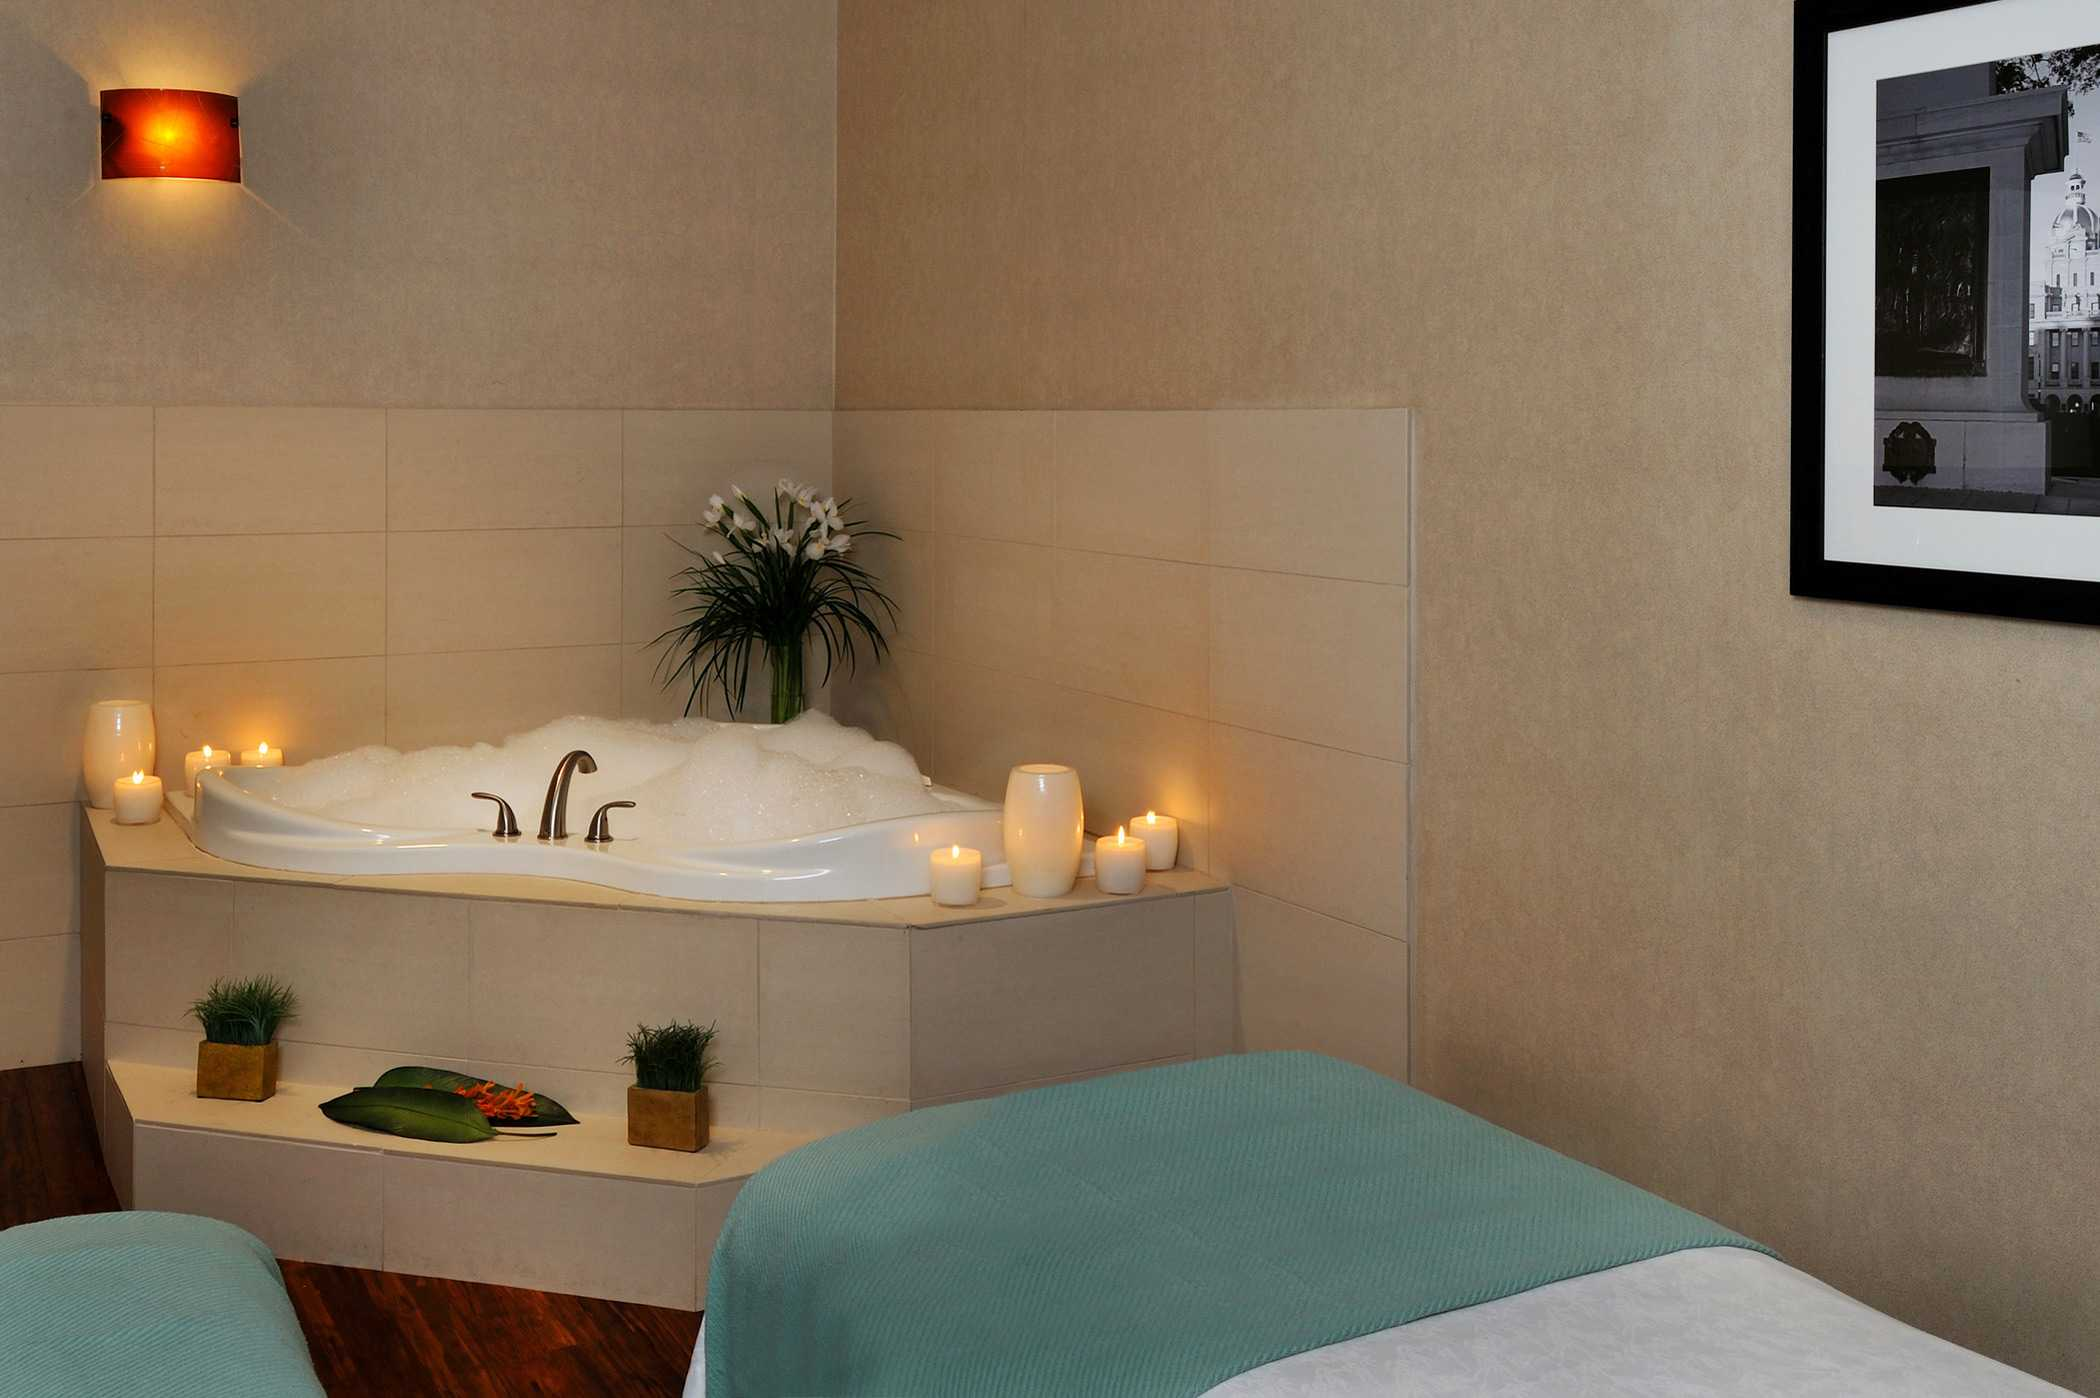 a spa tub prepared with a bubble bath, lit candles and the massage table set